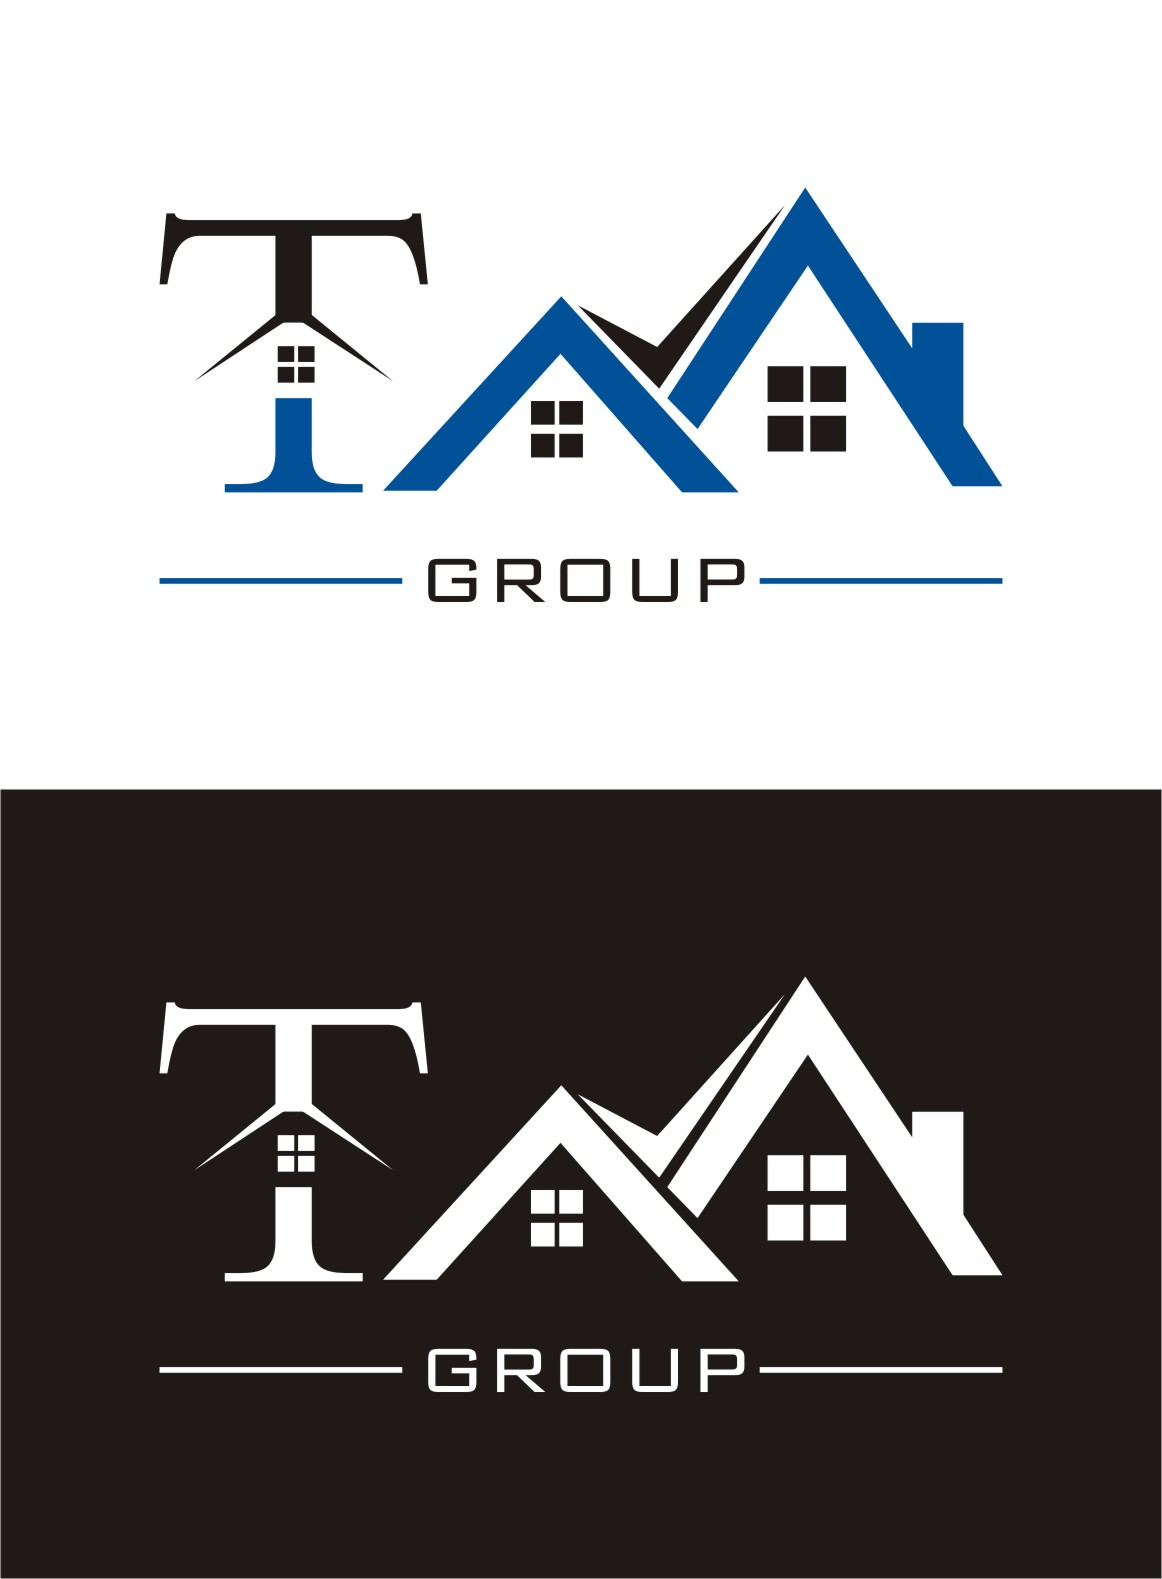 Logo Design by Spider Graphics - Entry No. 282 in the Logo Design Contest Creative Logo Design for Tava Group.